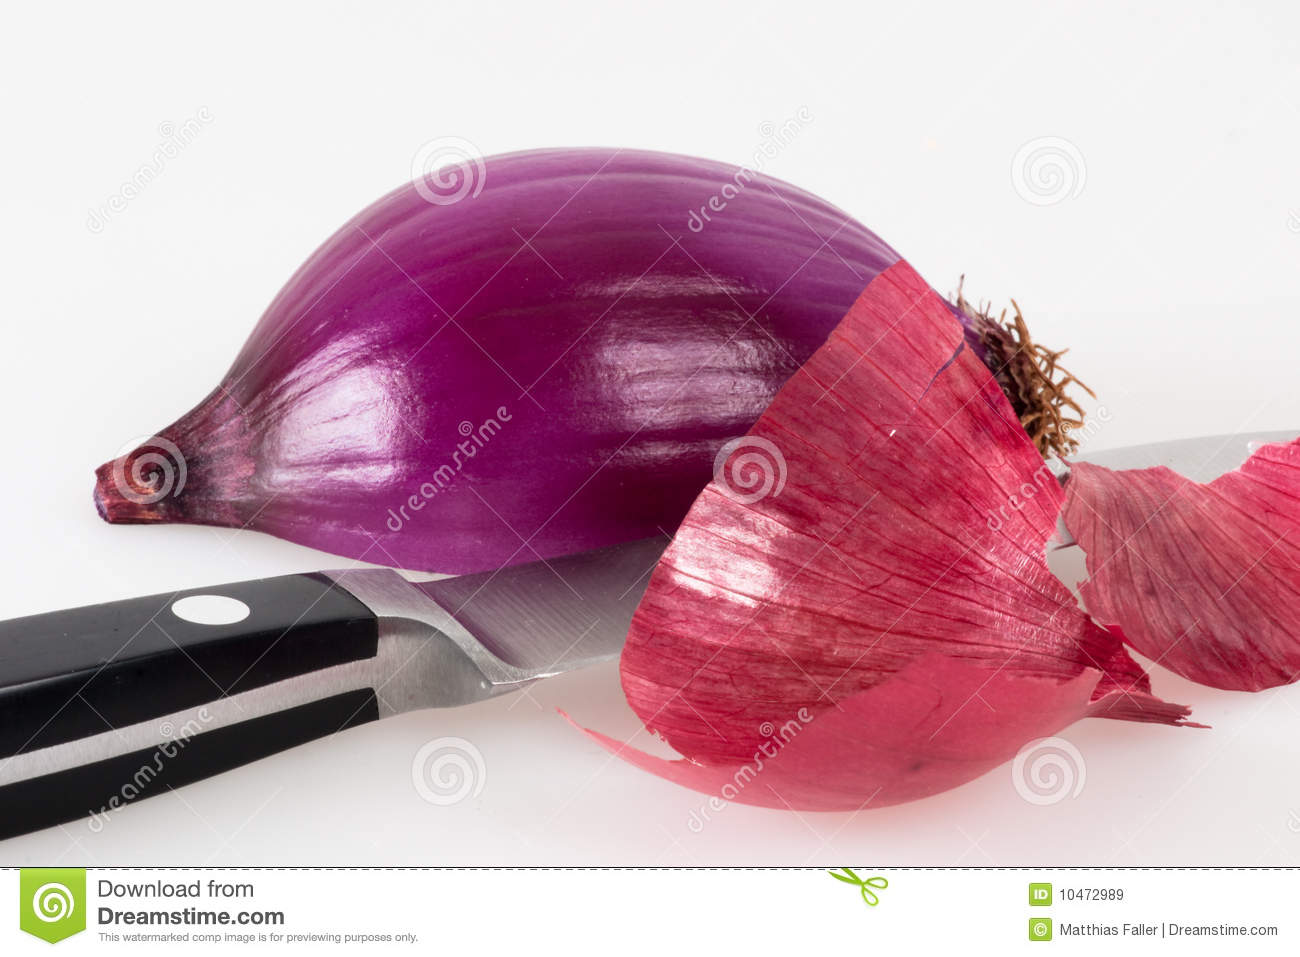 More similar stock images of ` Halved red onion with a kitchen knife `